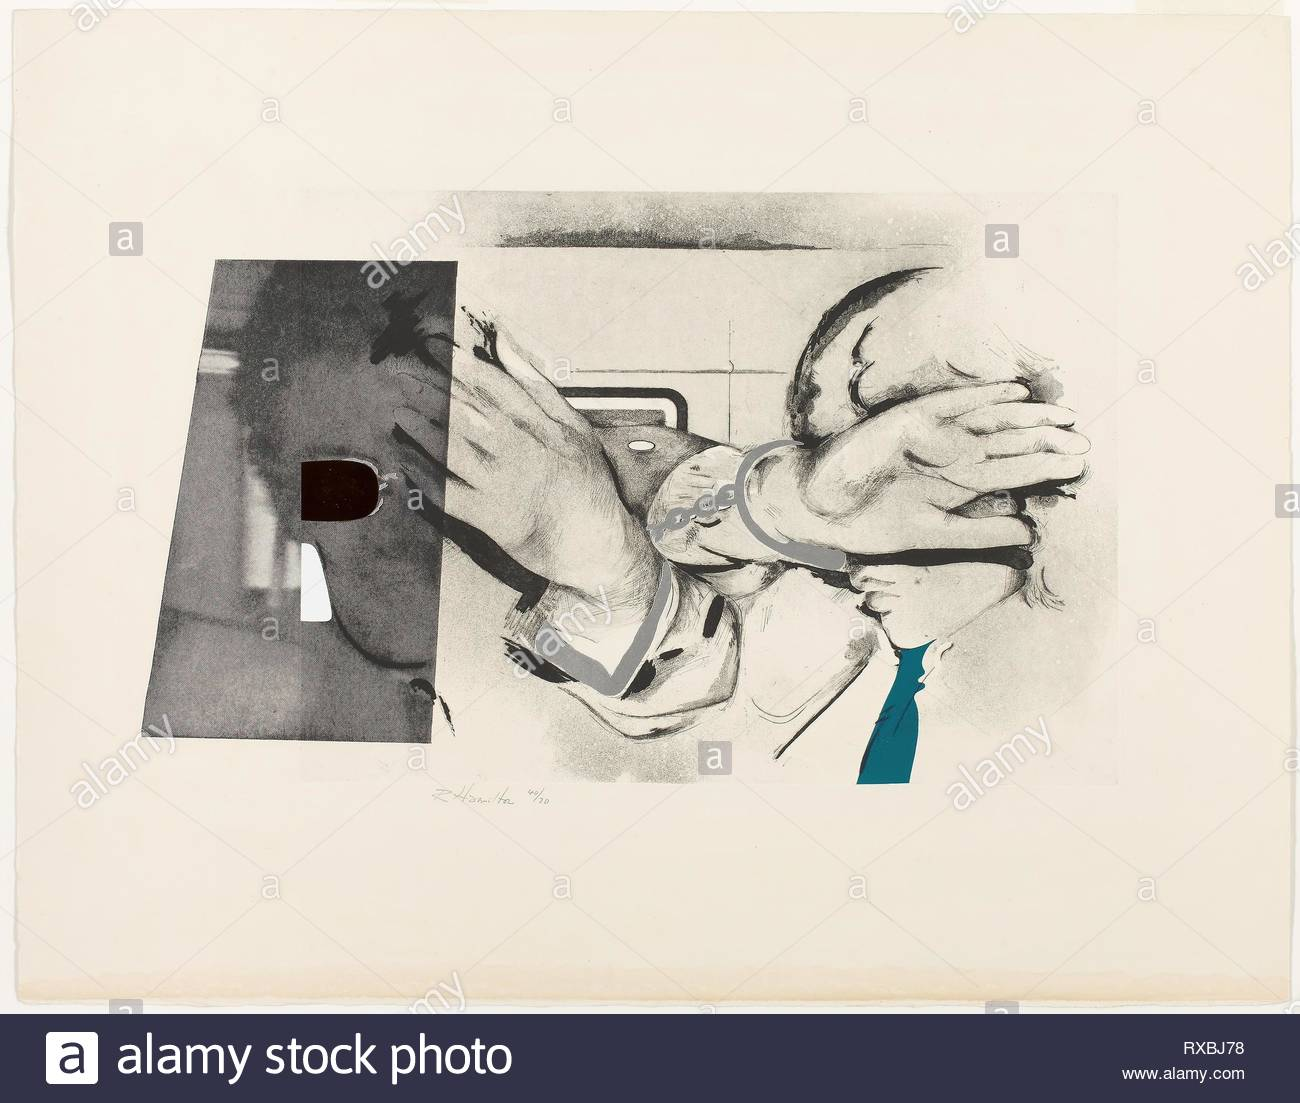 Swinging London 67. Richard Hamilton; English, 1922 - 2011. Date: 1968. Dimensions: 339 × 558 mm (image); 568 × 729 mm (sheet). Etching and aquatint with photo-engraving, die-stamping, collage and embossing on ivory wove paper. Origin: England. Museum: The Chicago Art Institute. - Stock Image